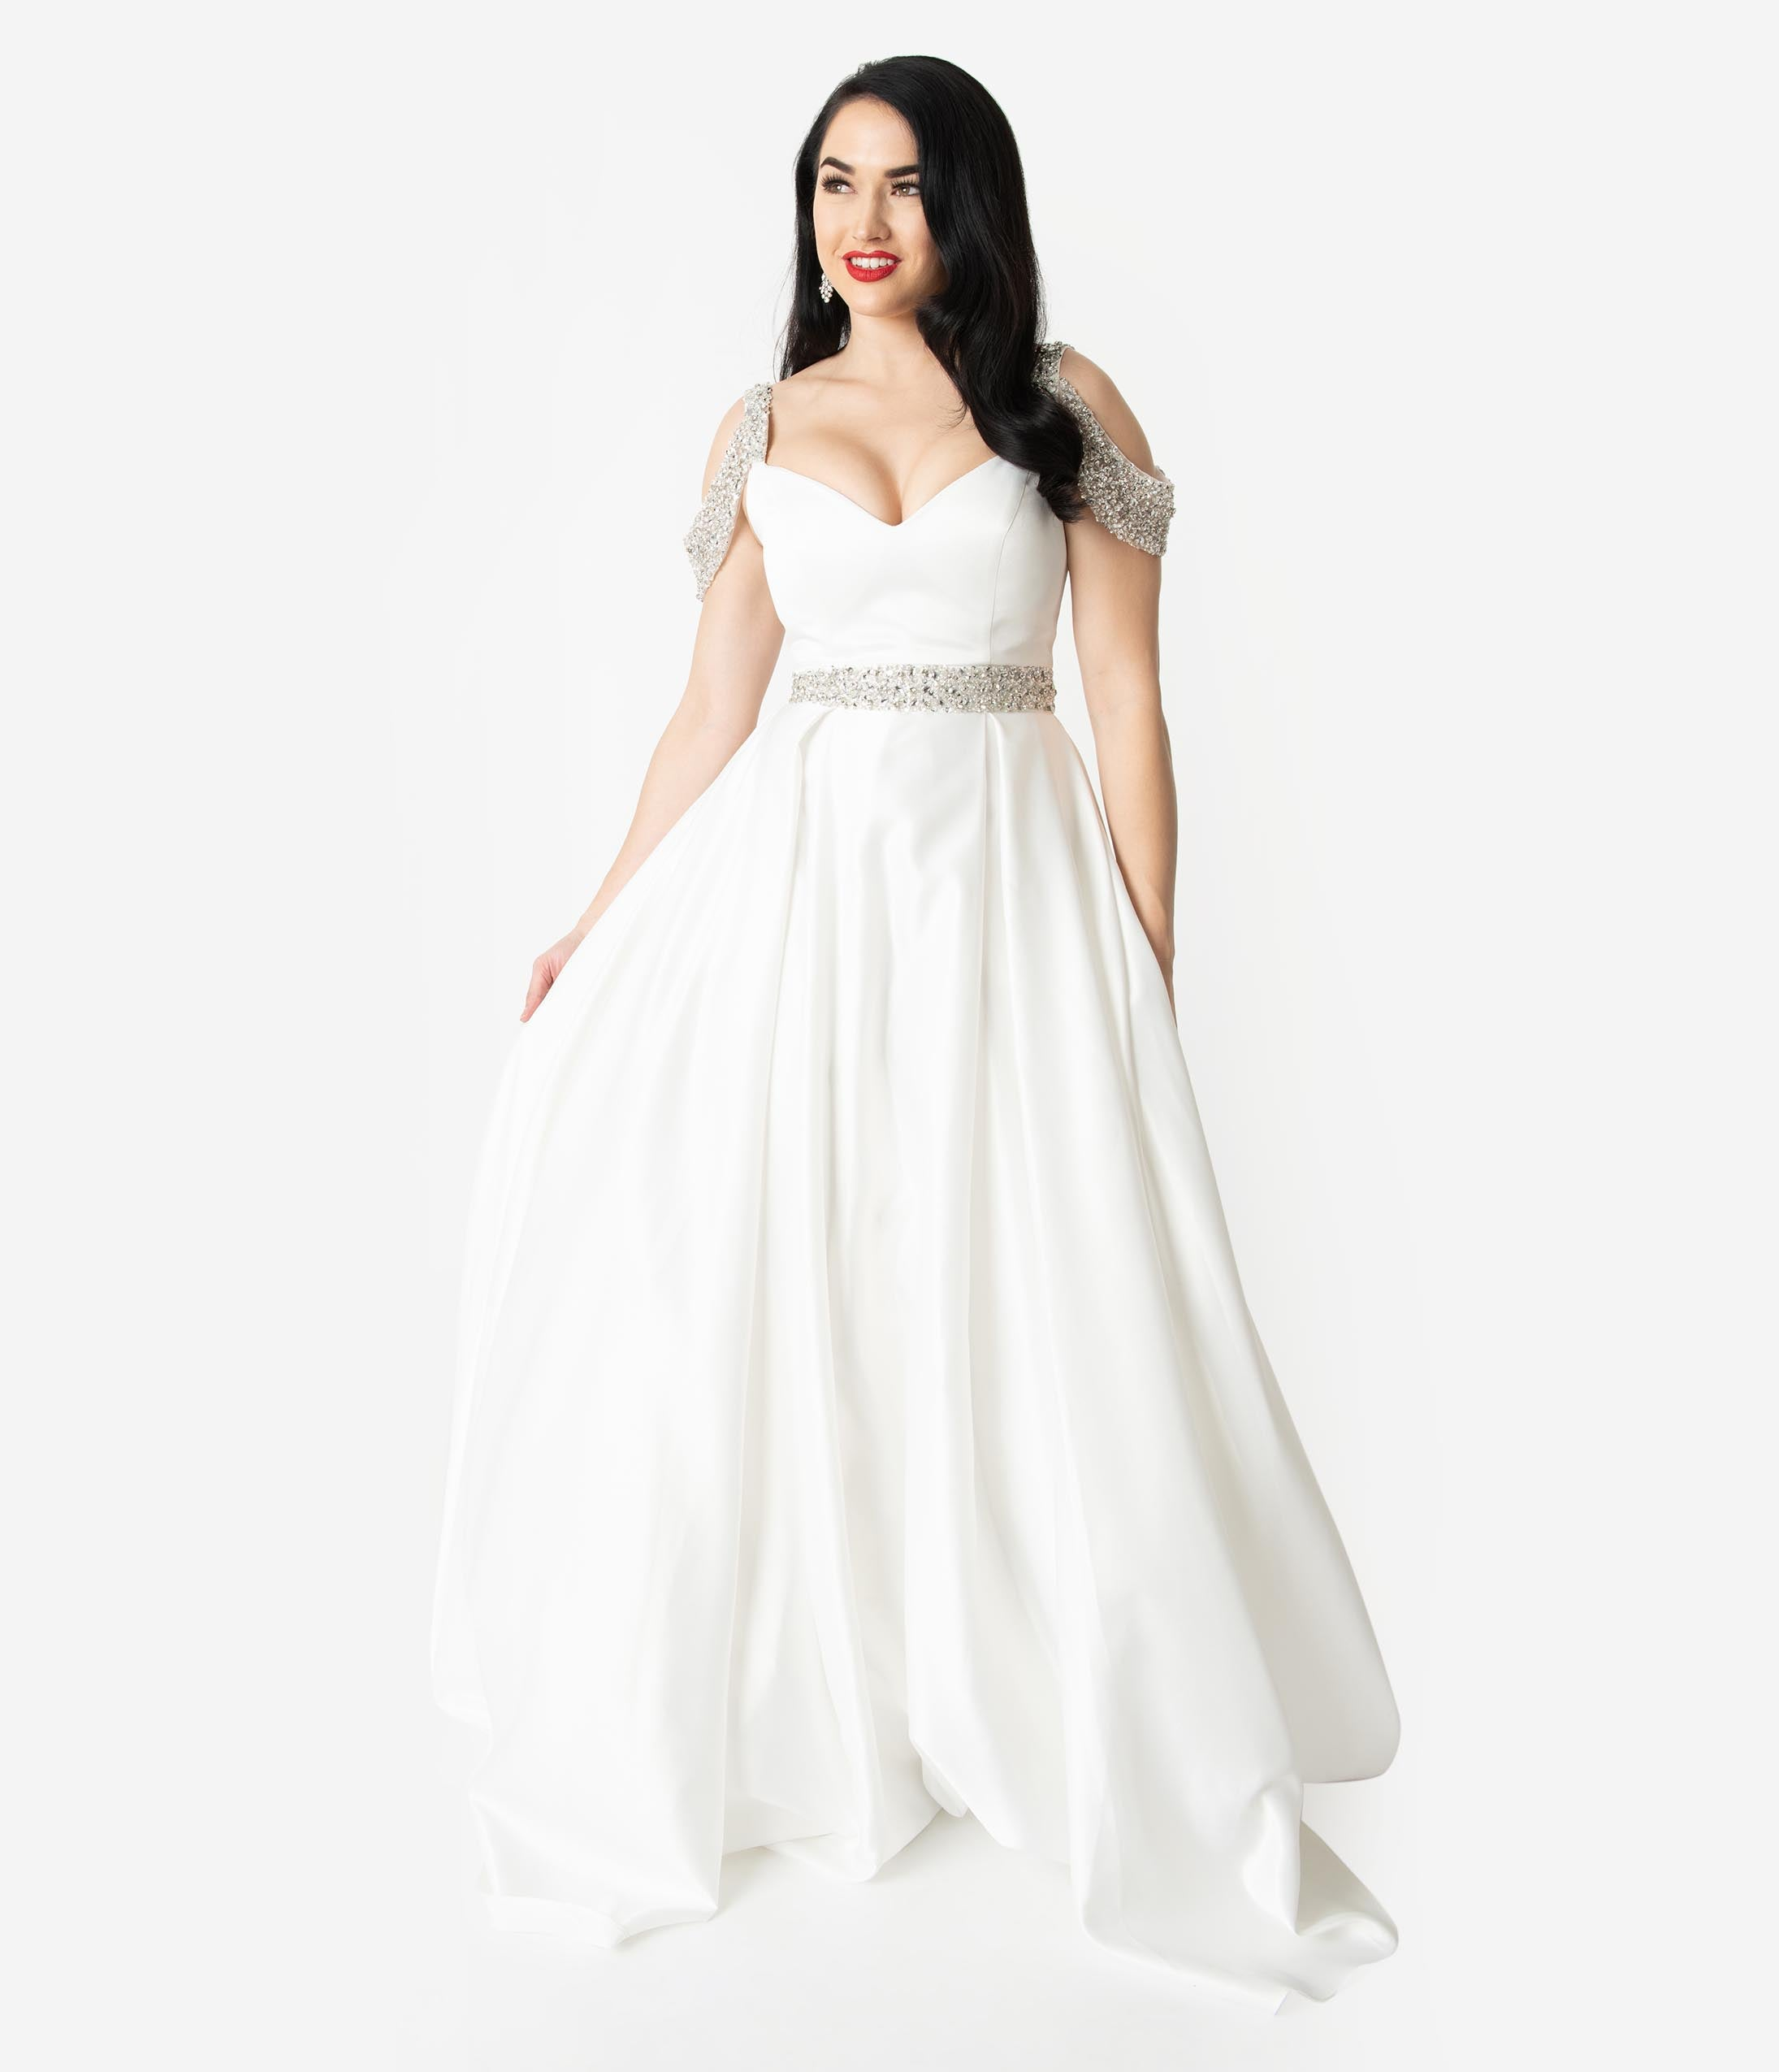 d8f4bfc8041 Happily Ever After – Fairytale Dresses – Unique Vintage